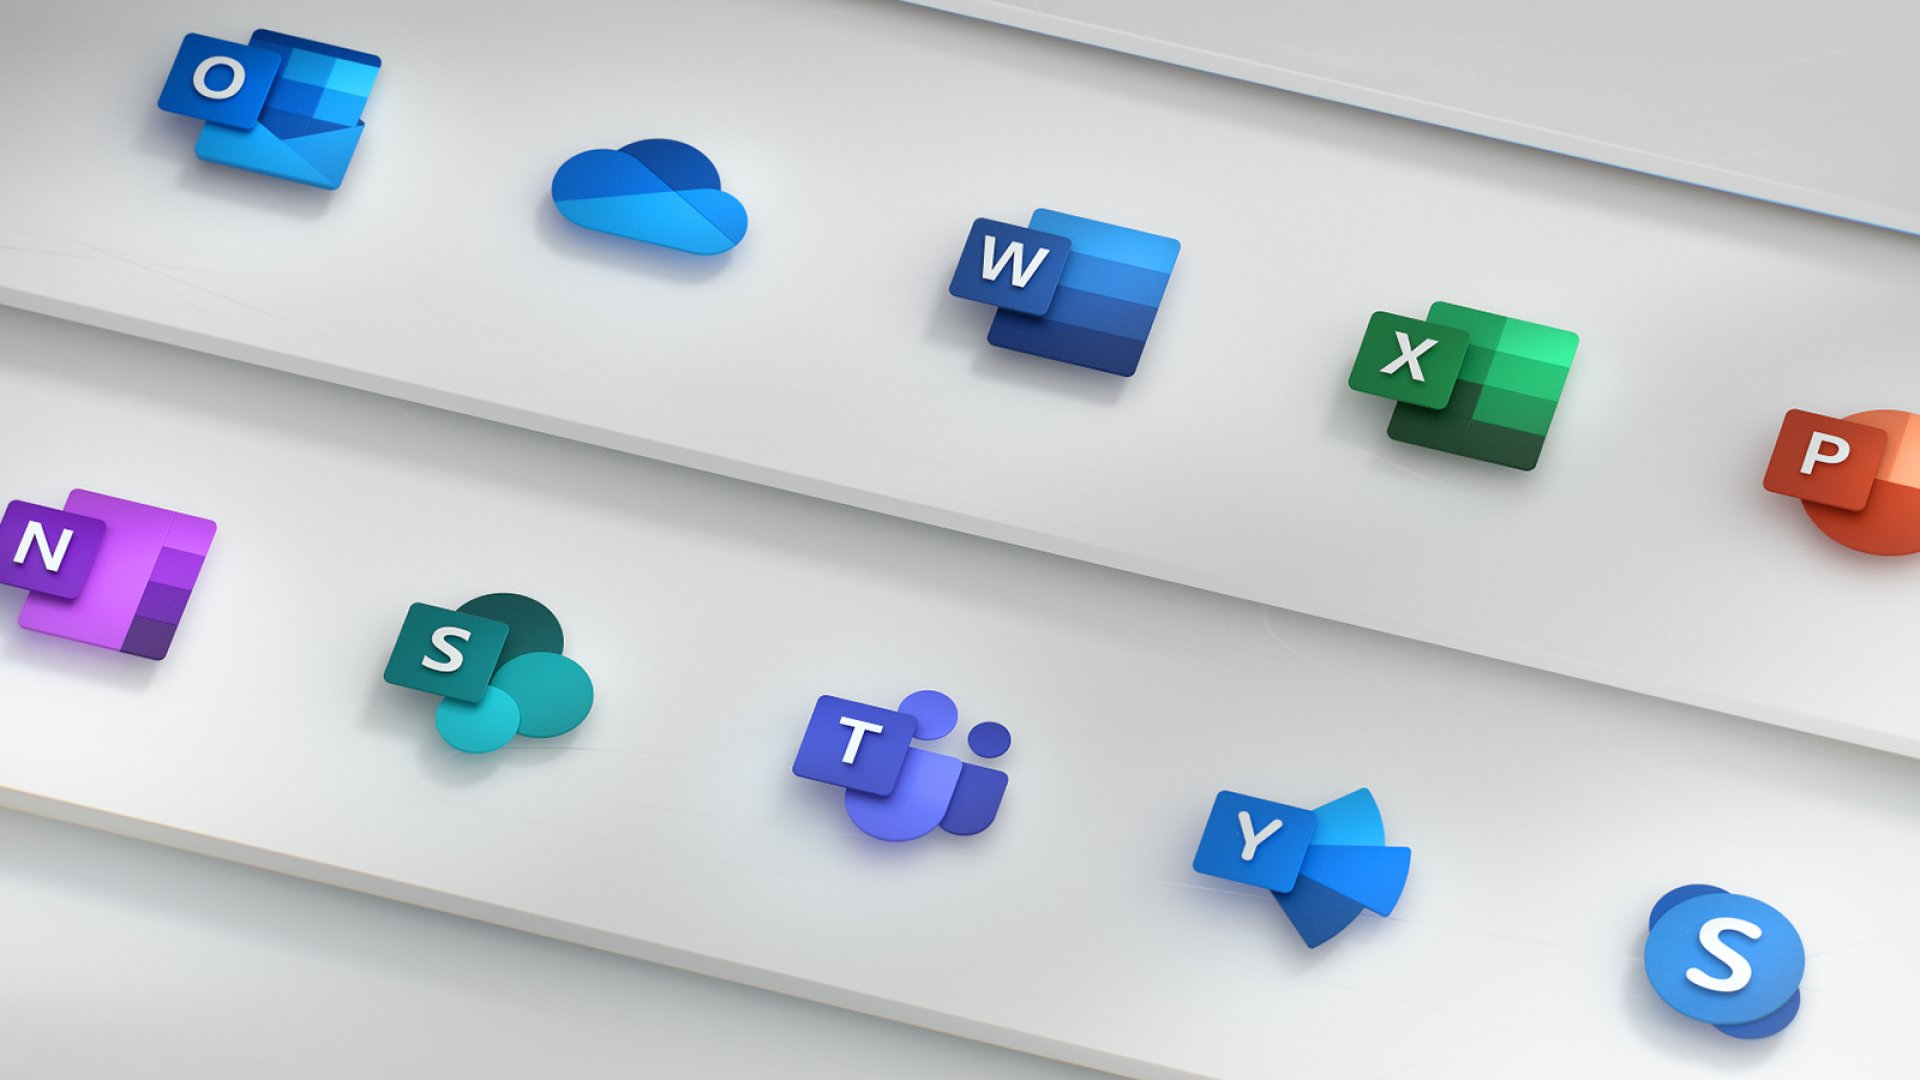 What do you think of the new Microsoft Office icons?